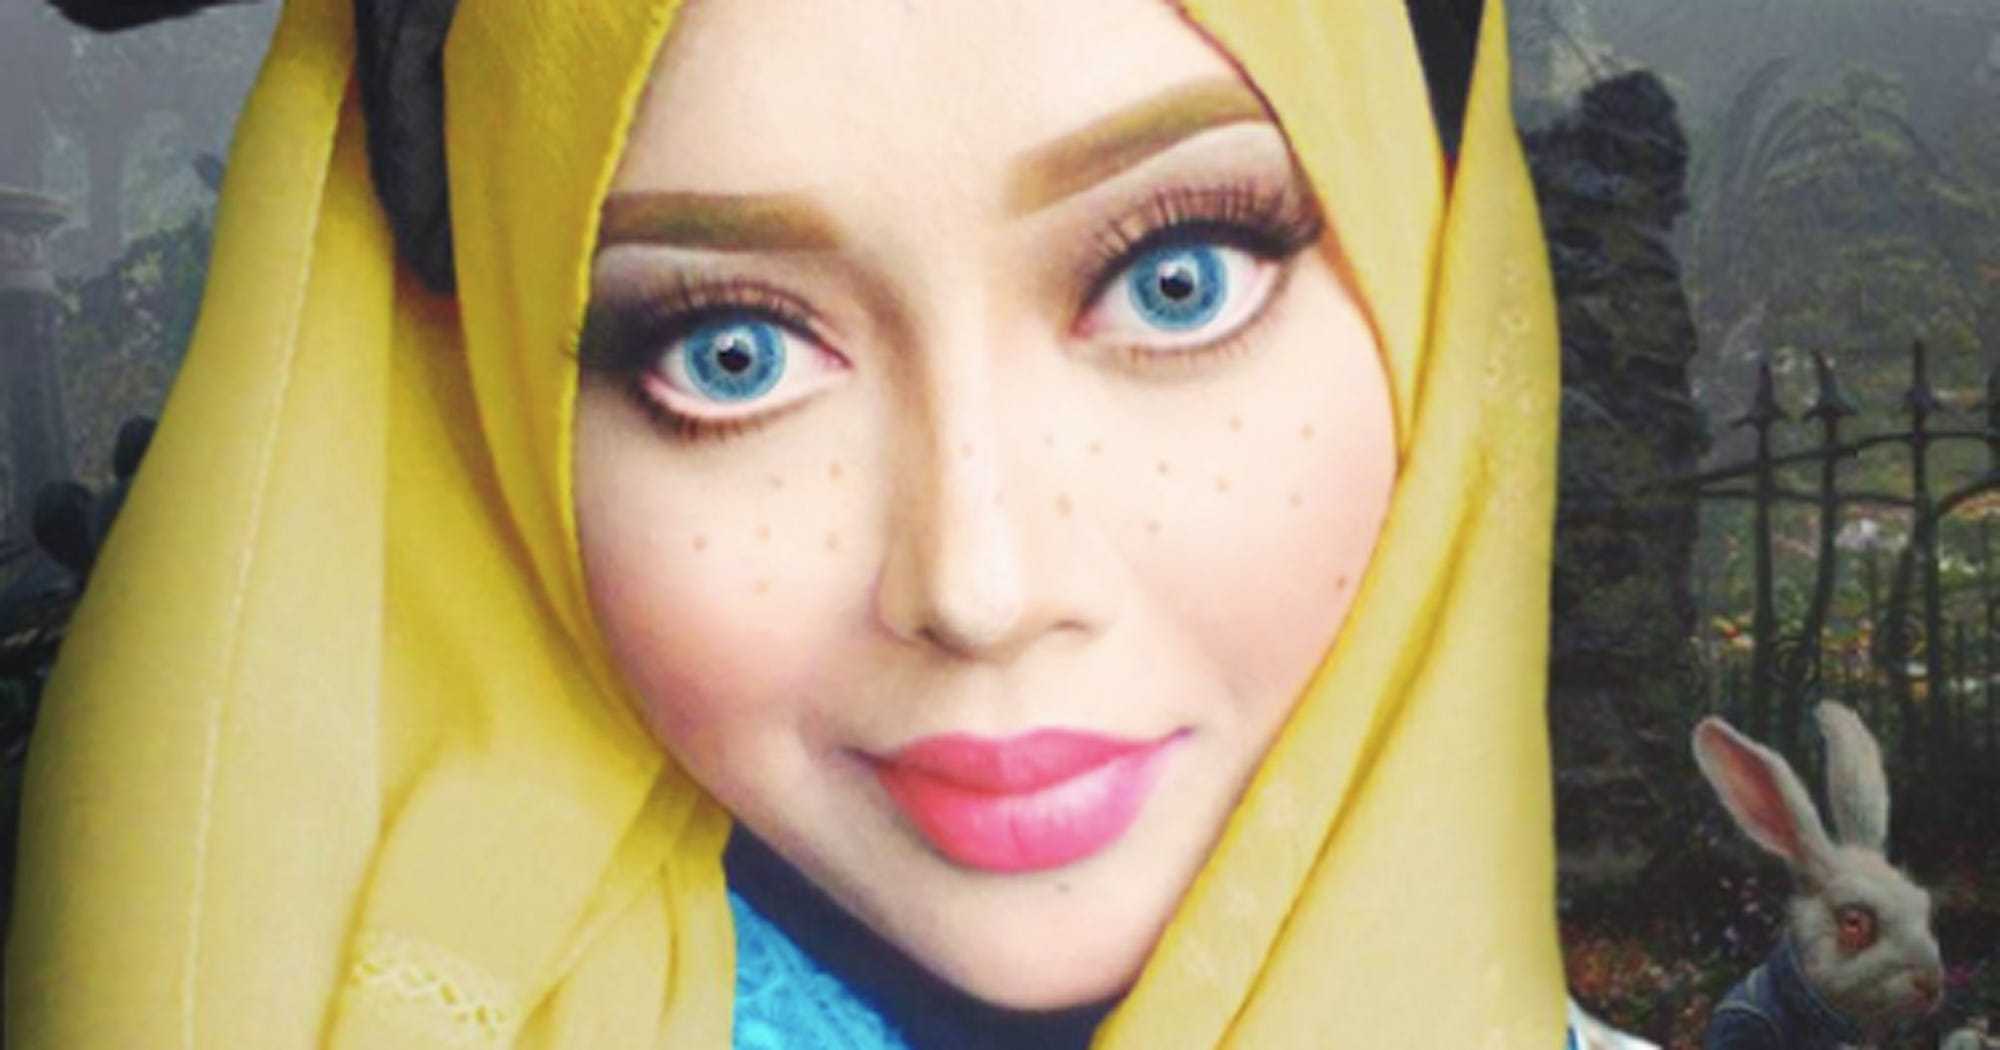 Hijab Makeup Artist Disney Princess - Makeup artist uses hijab to transform herself into disney characters